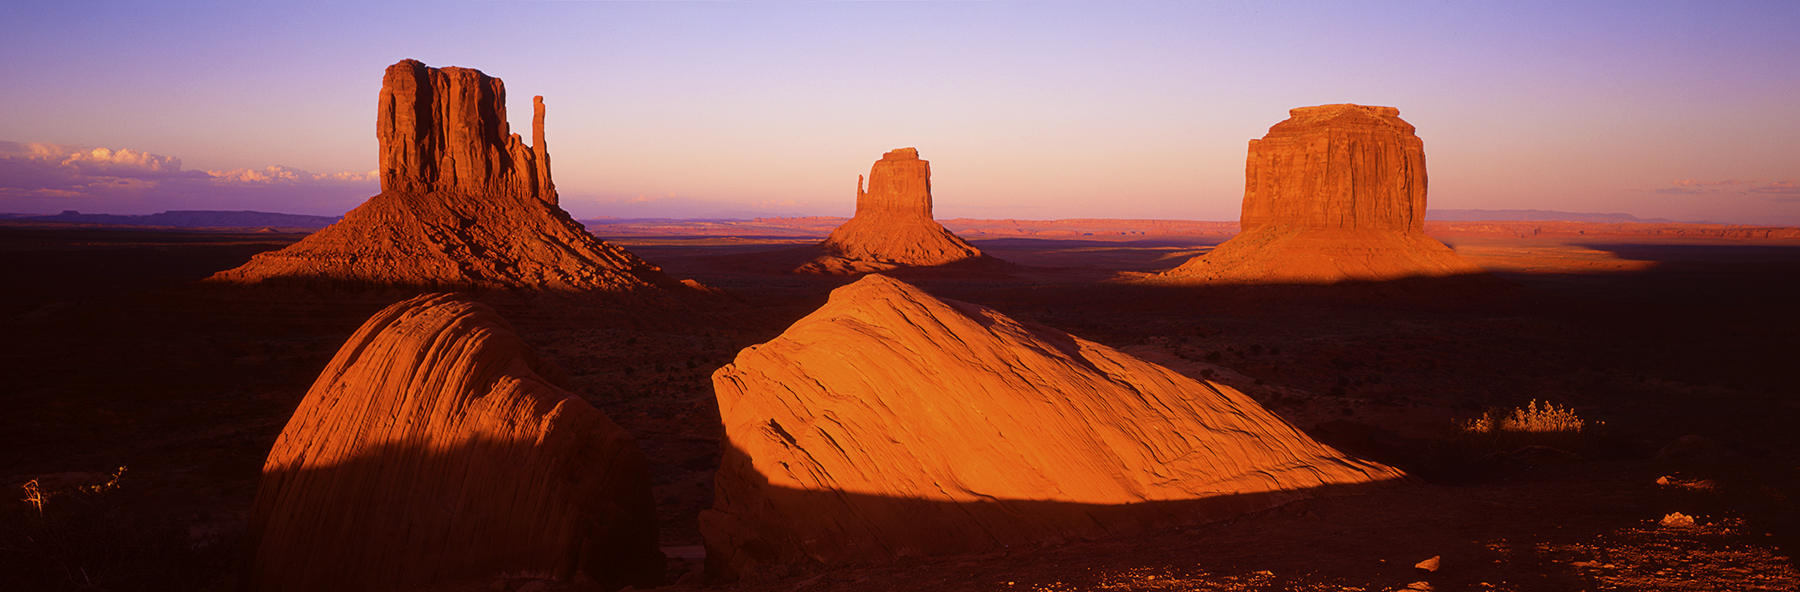 Monument Valley, USA. A Limited Edition Fine Art Landscape Photograph by Richard Hume